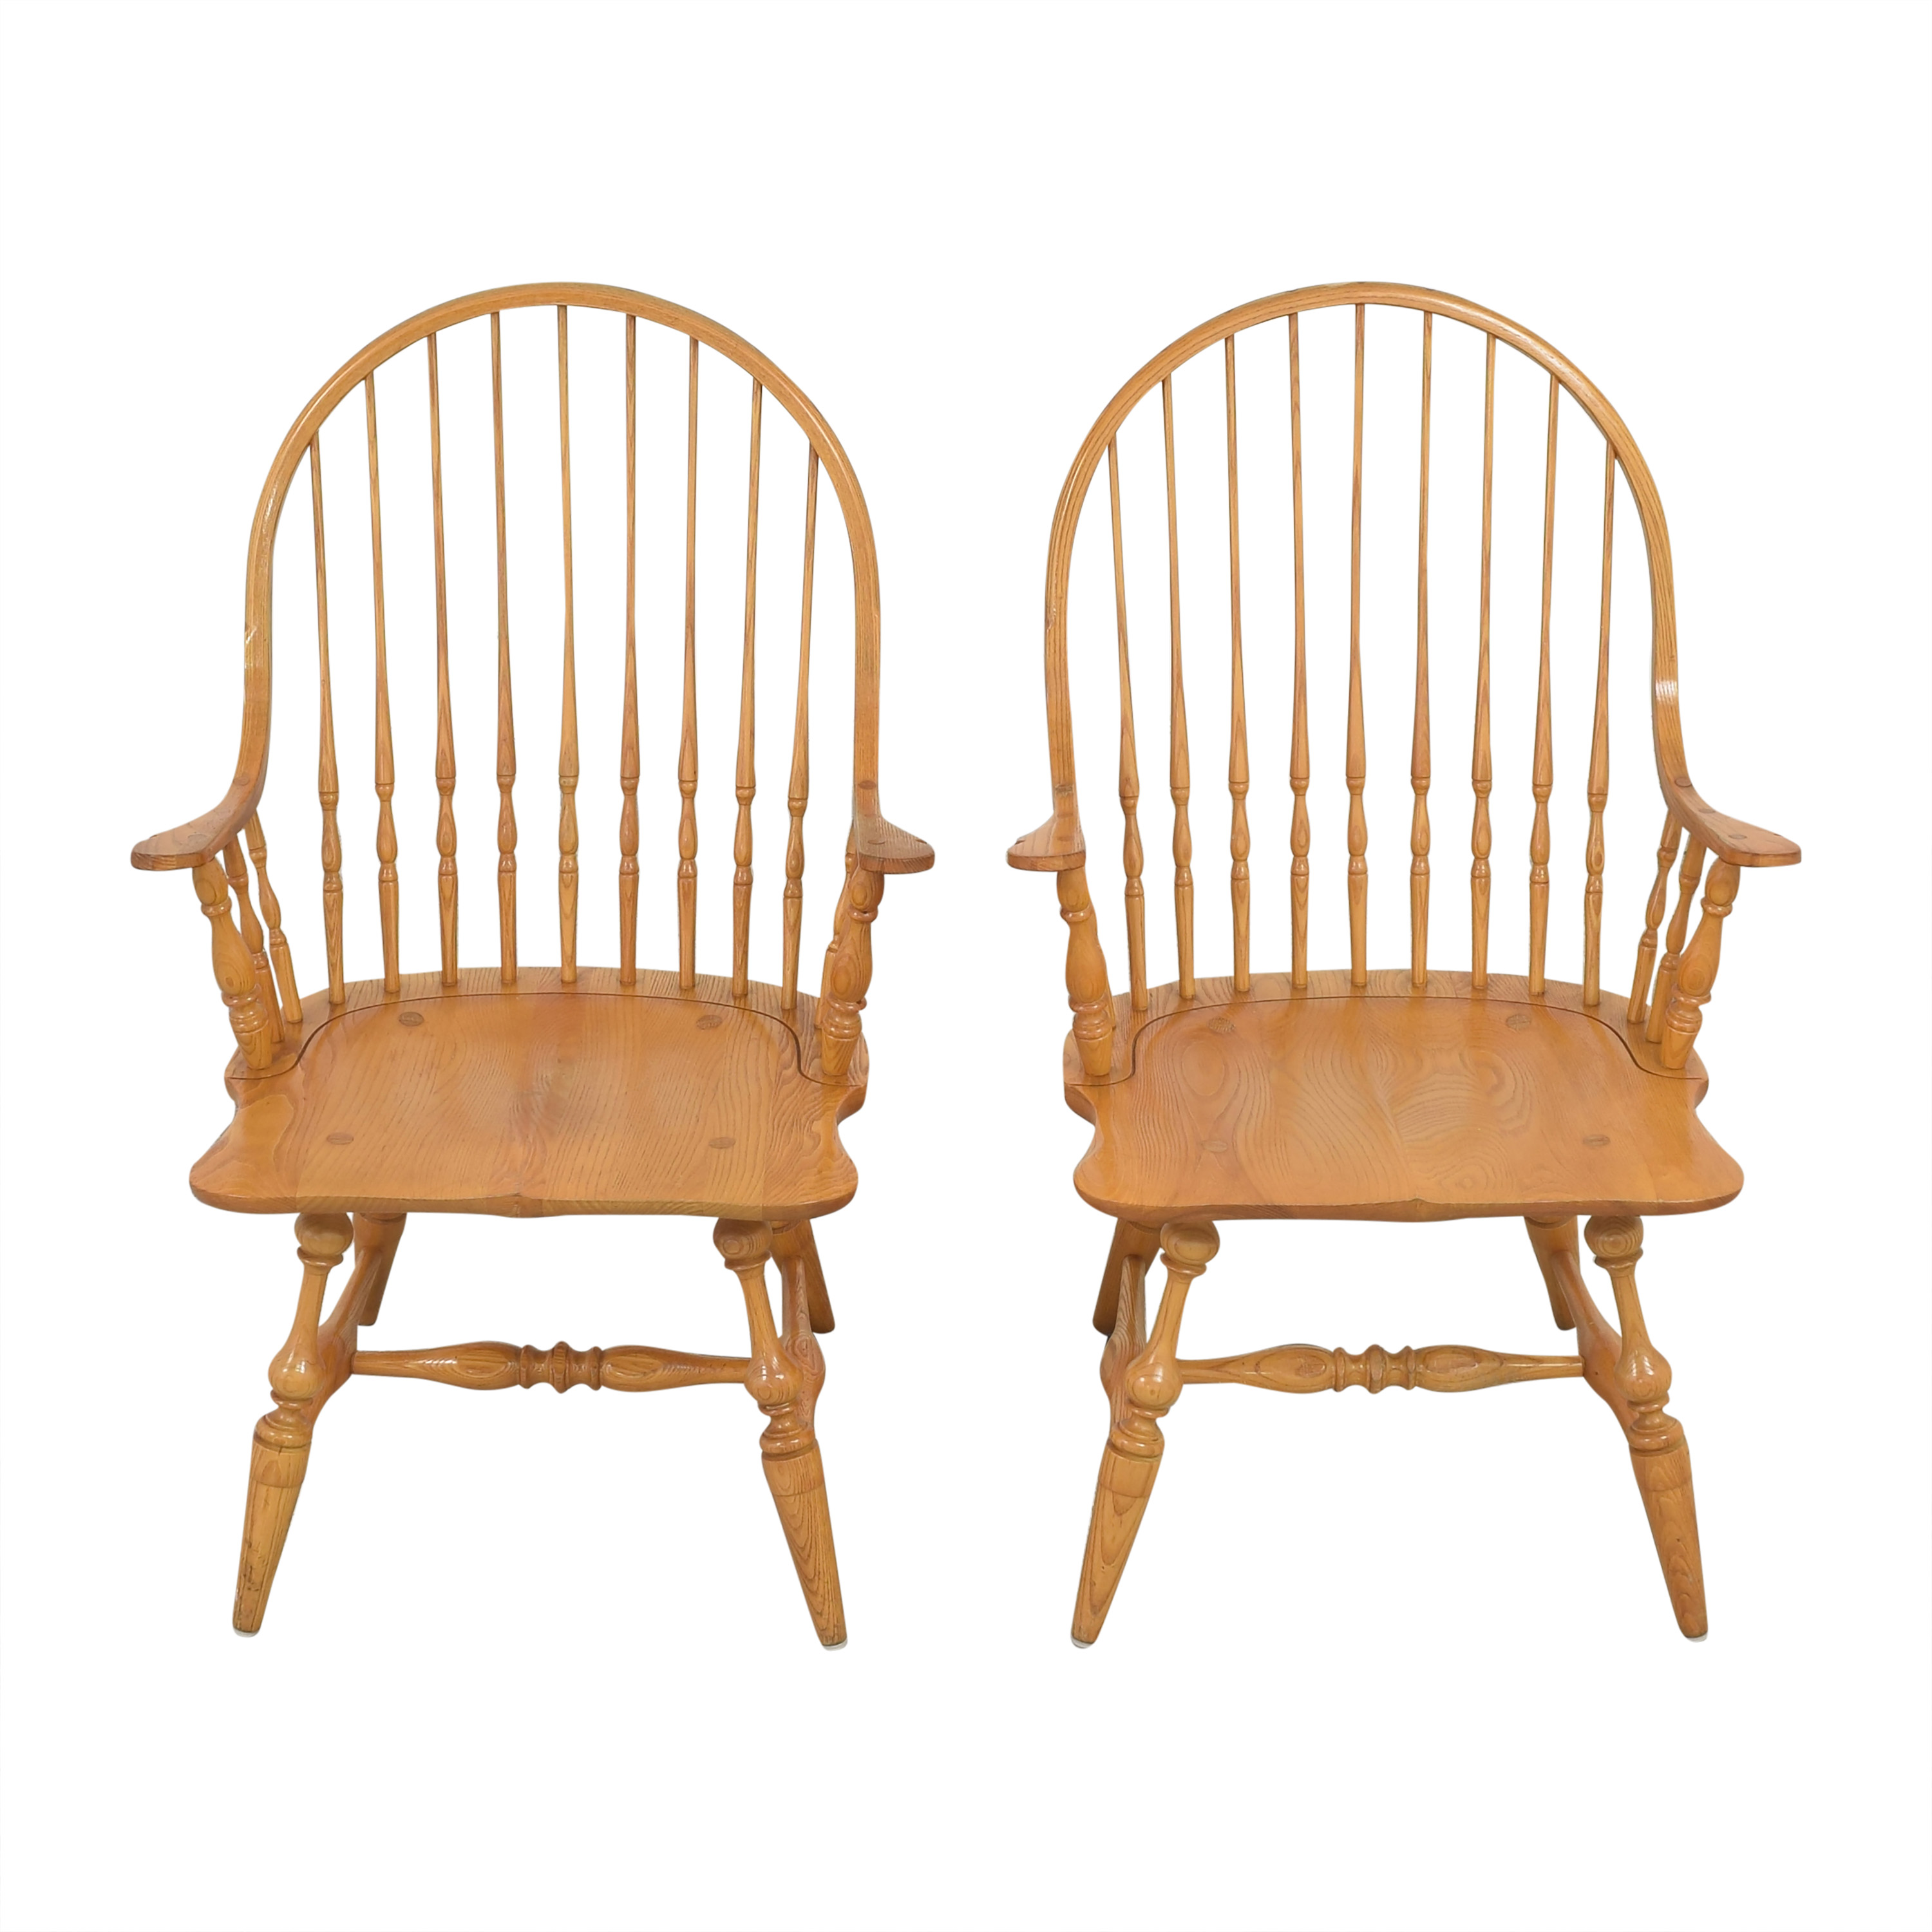 Hitchcock Hitchcock Windsor Style Dining Chairs dimensions